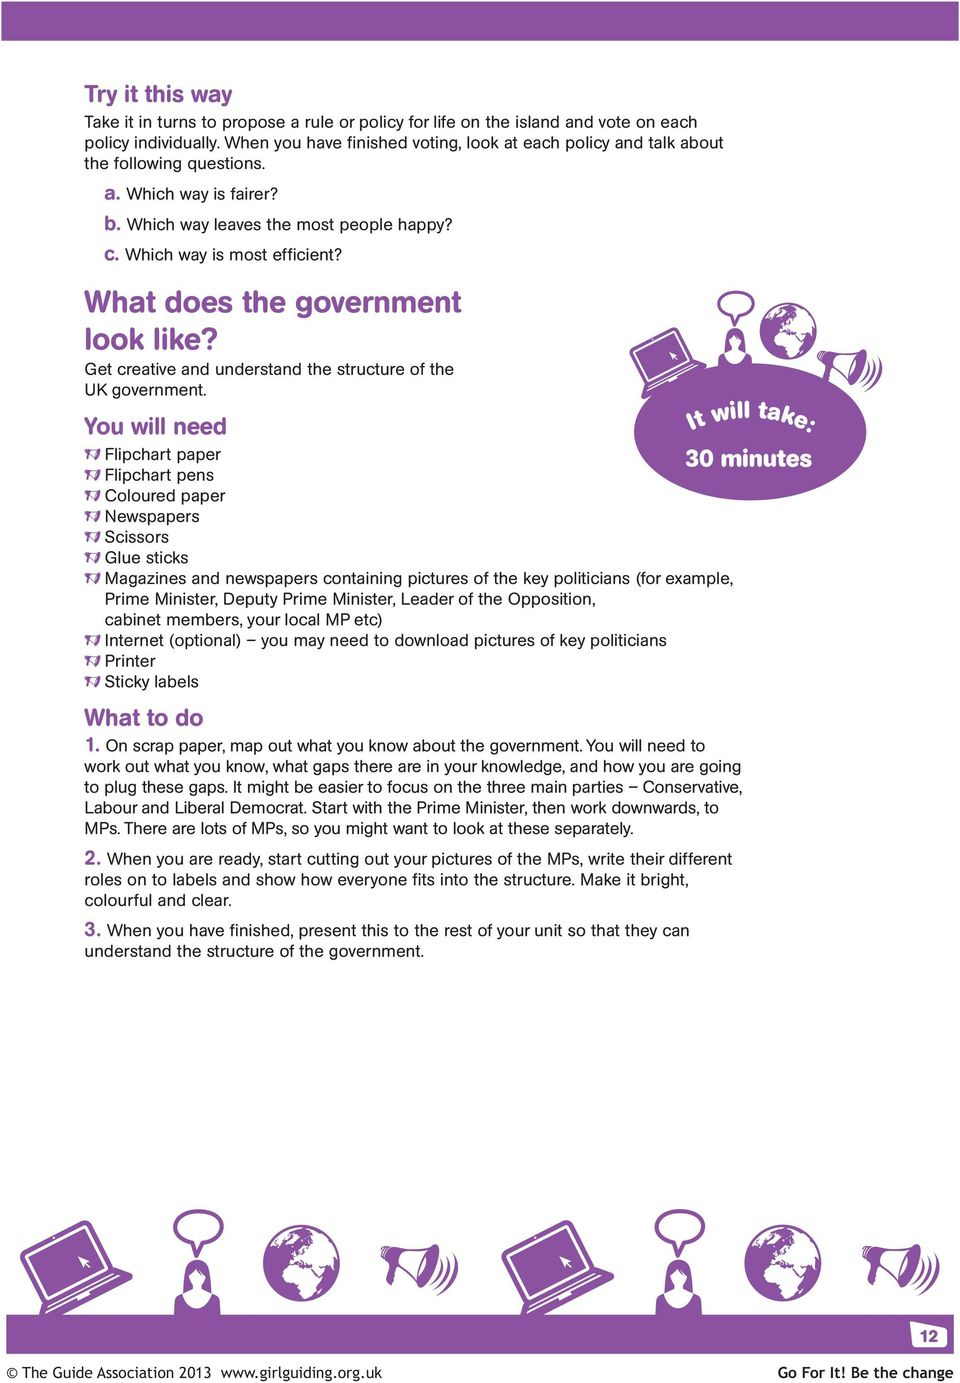 What does the government look like? Get creative and understand the structure of the UK government.